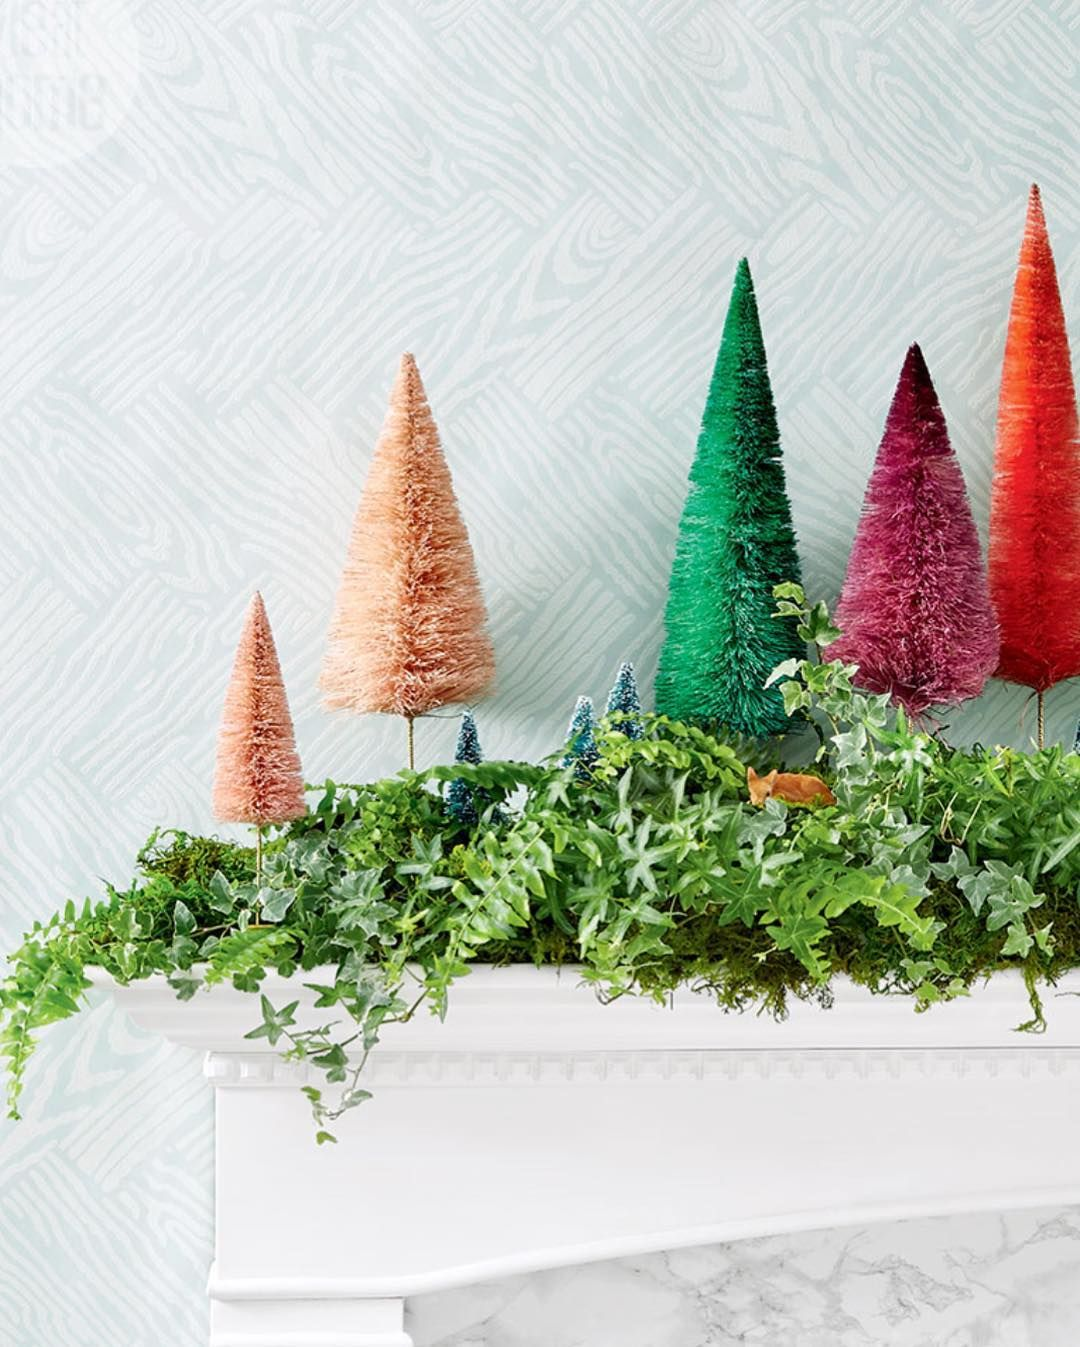 Bottle Brush Trees Dressing Up The Mantel Christmas Tree And Fireplace Christmas Mantle Decor Fireplace Garland